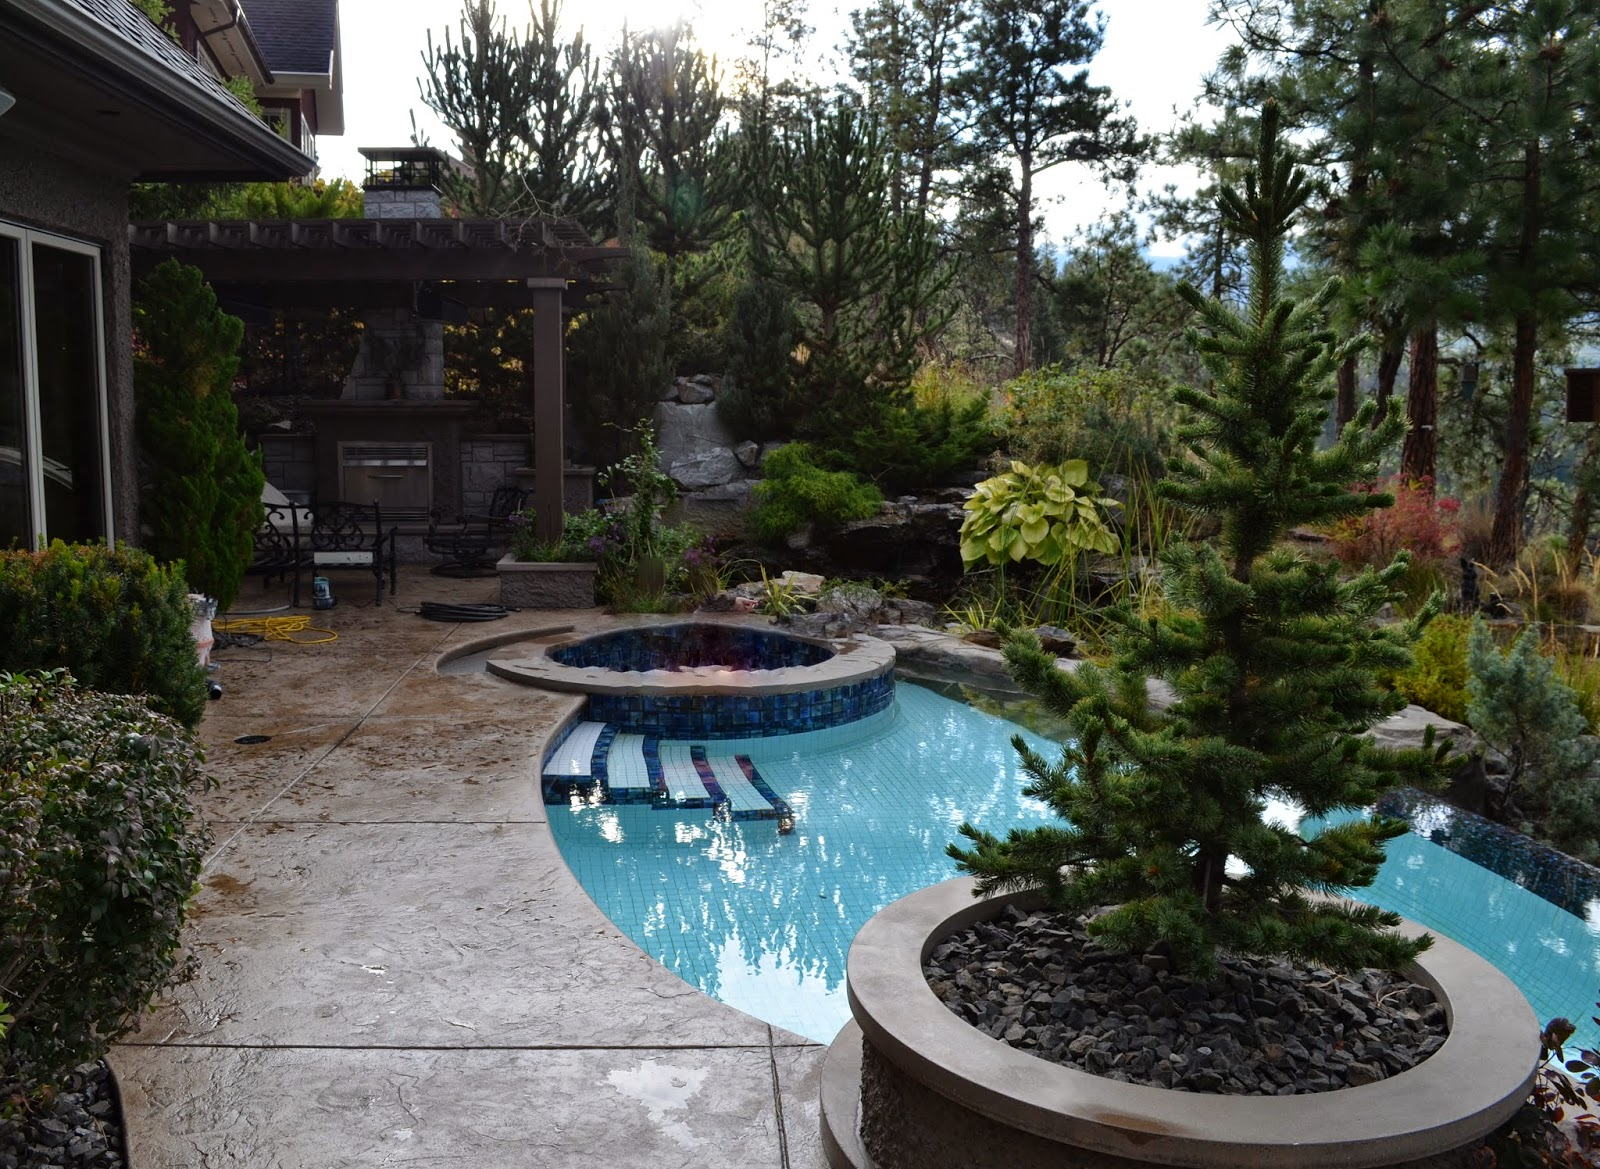 Sealing exposed aggregate pool deck - Stamped Concrete Maintenance Repair And Sealing Blog By Concrete Experts Mode Concrete In Kelowna Bc